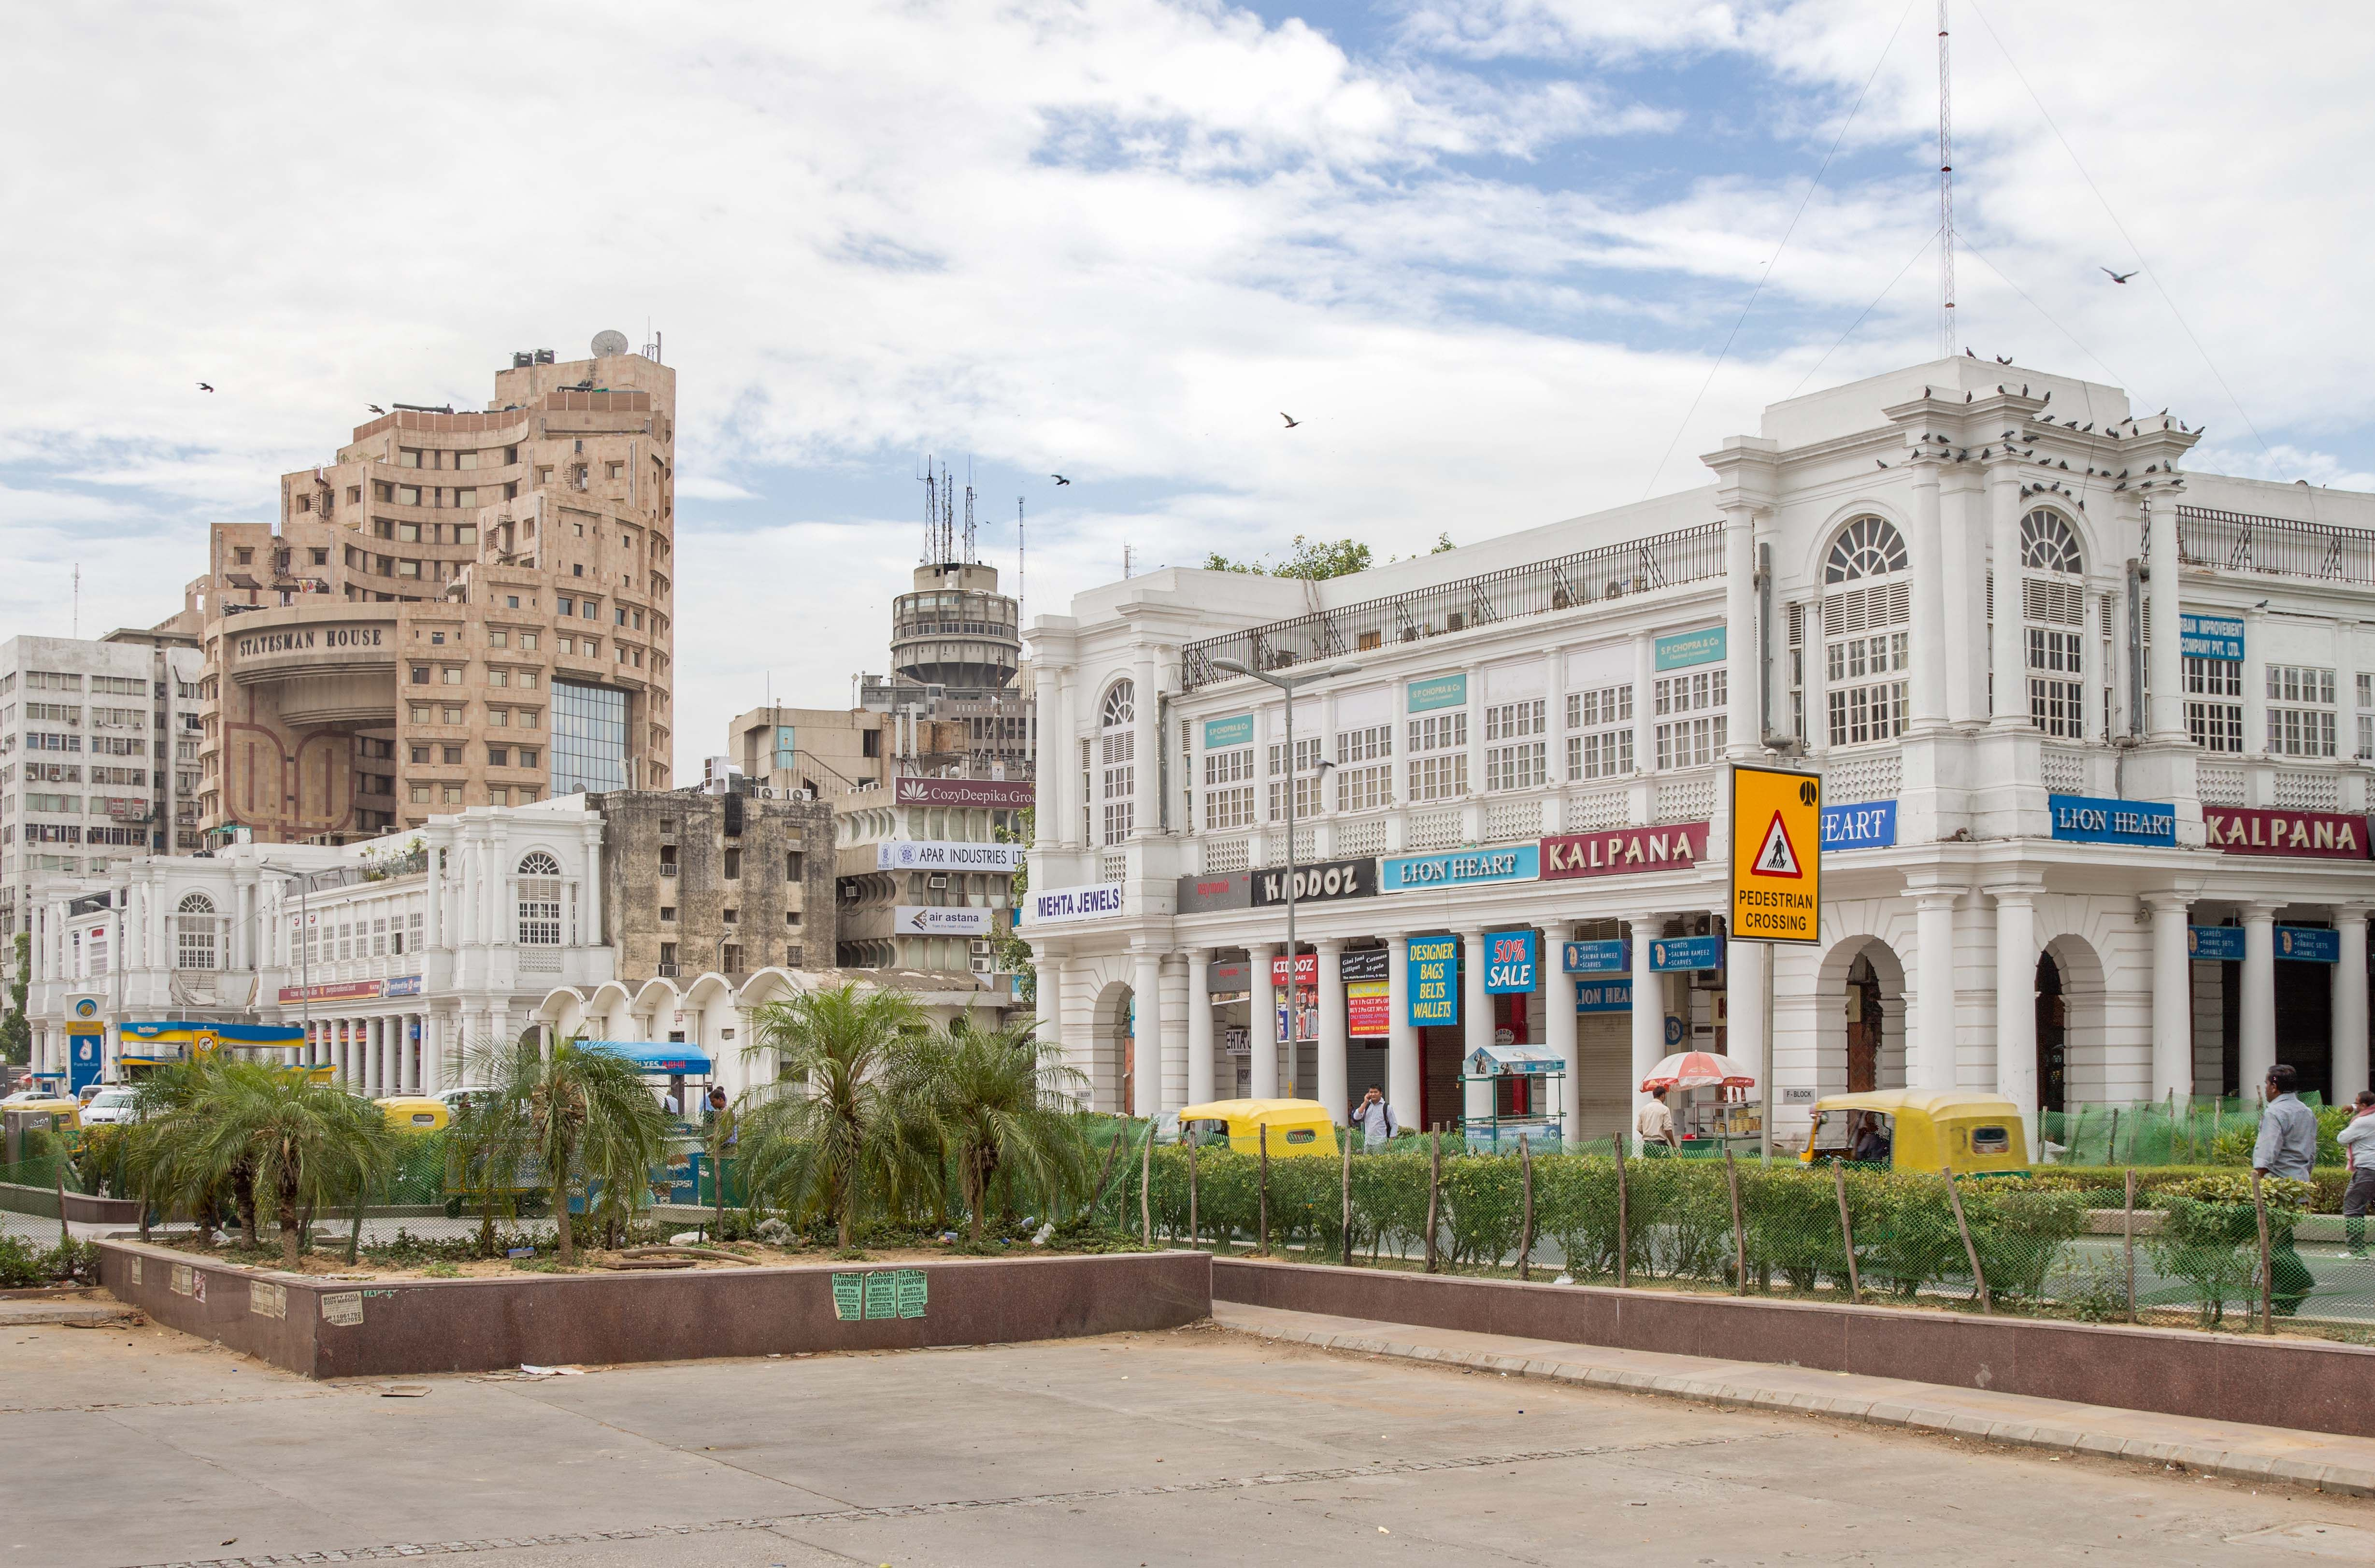 Connaught Place, situated in the heart of New Delhi, is a